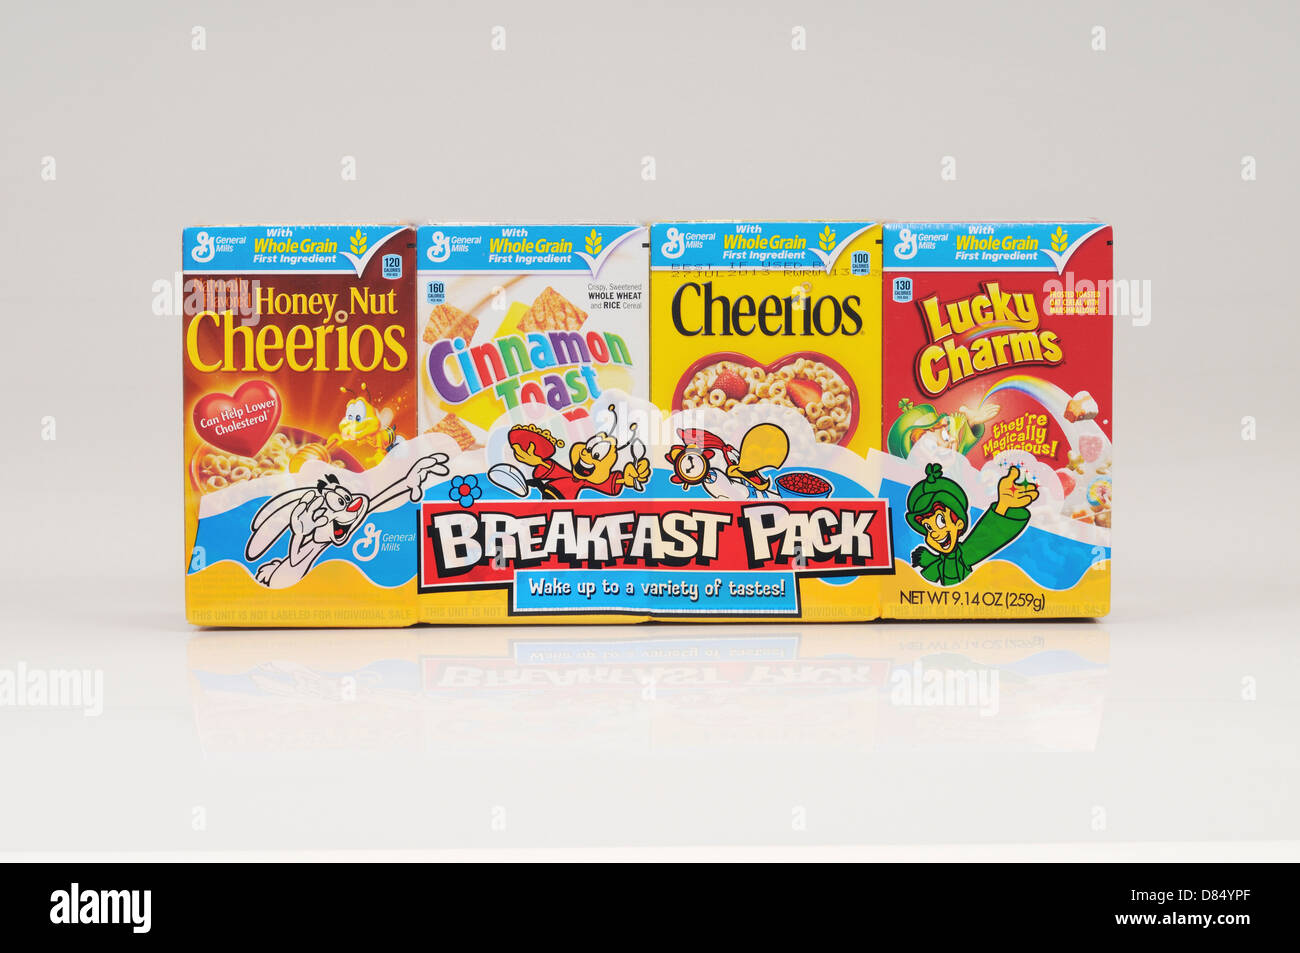 Boxes of General Mills cereal breakfast pack on white background cutout. USA - Stock Image